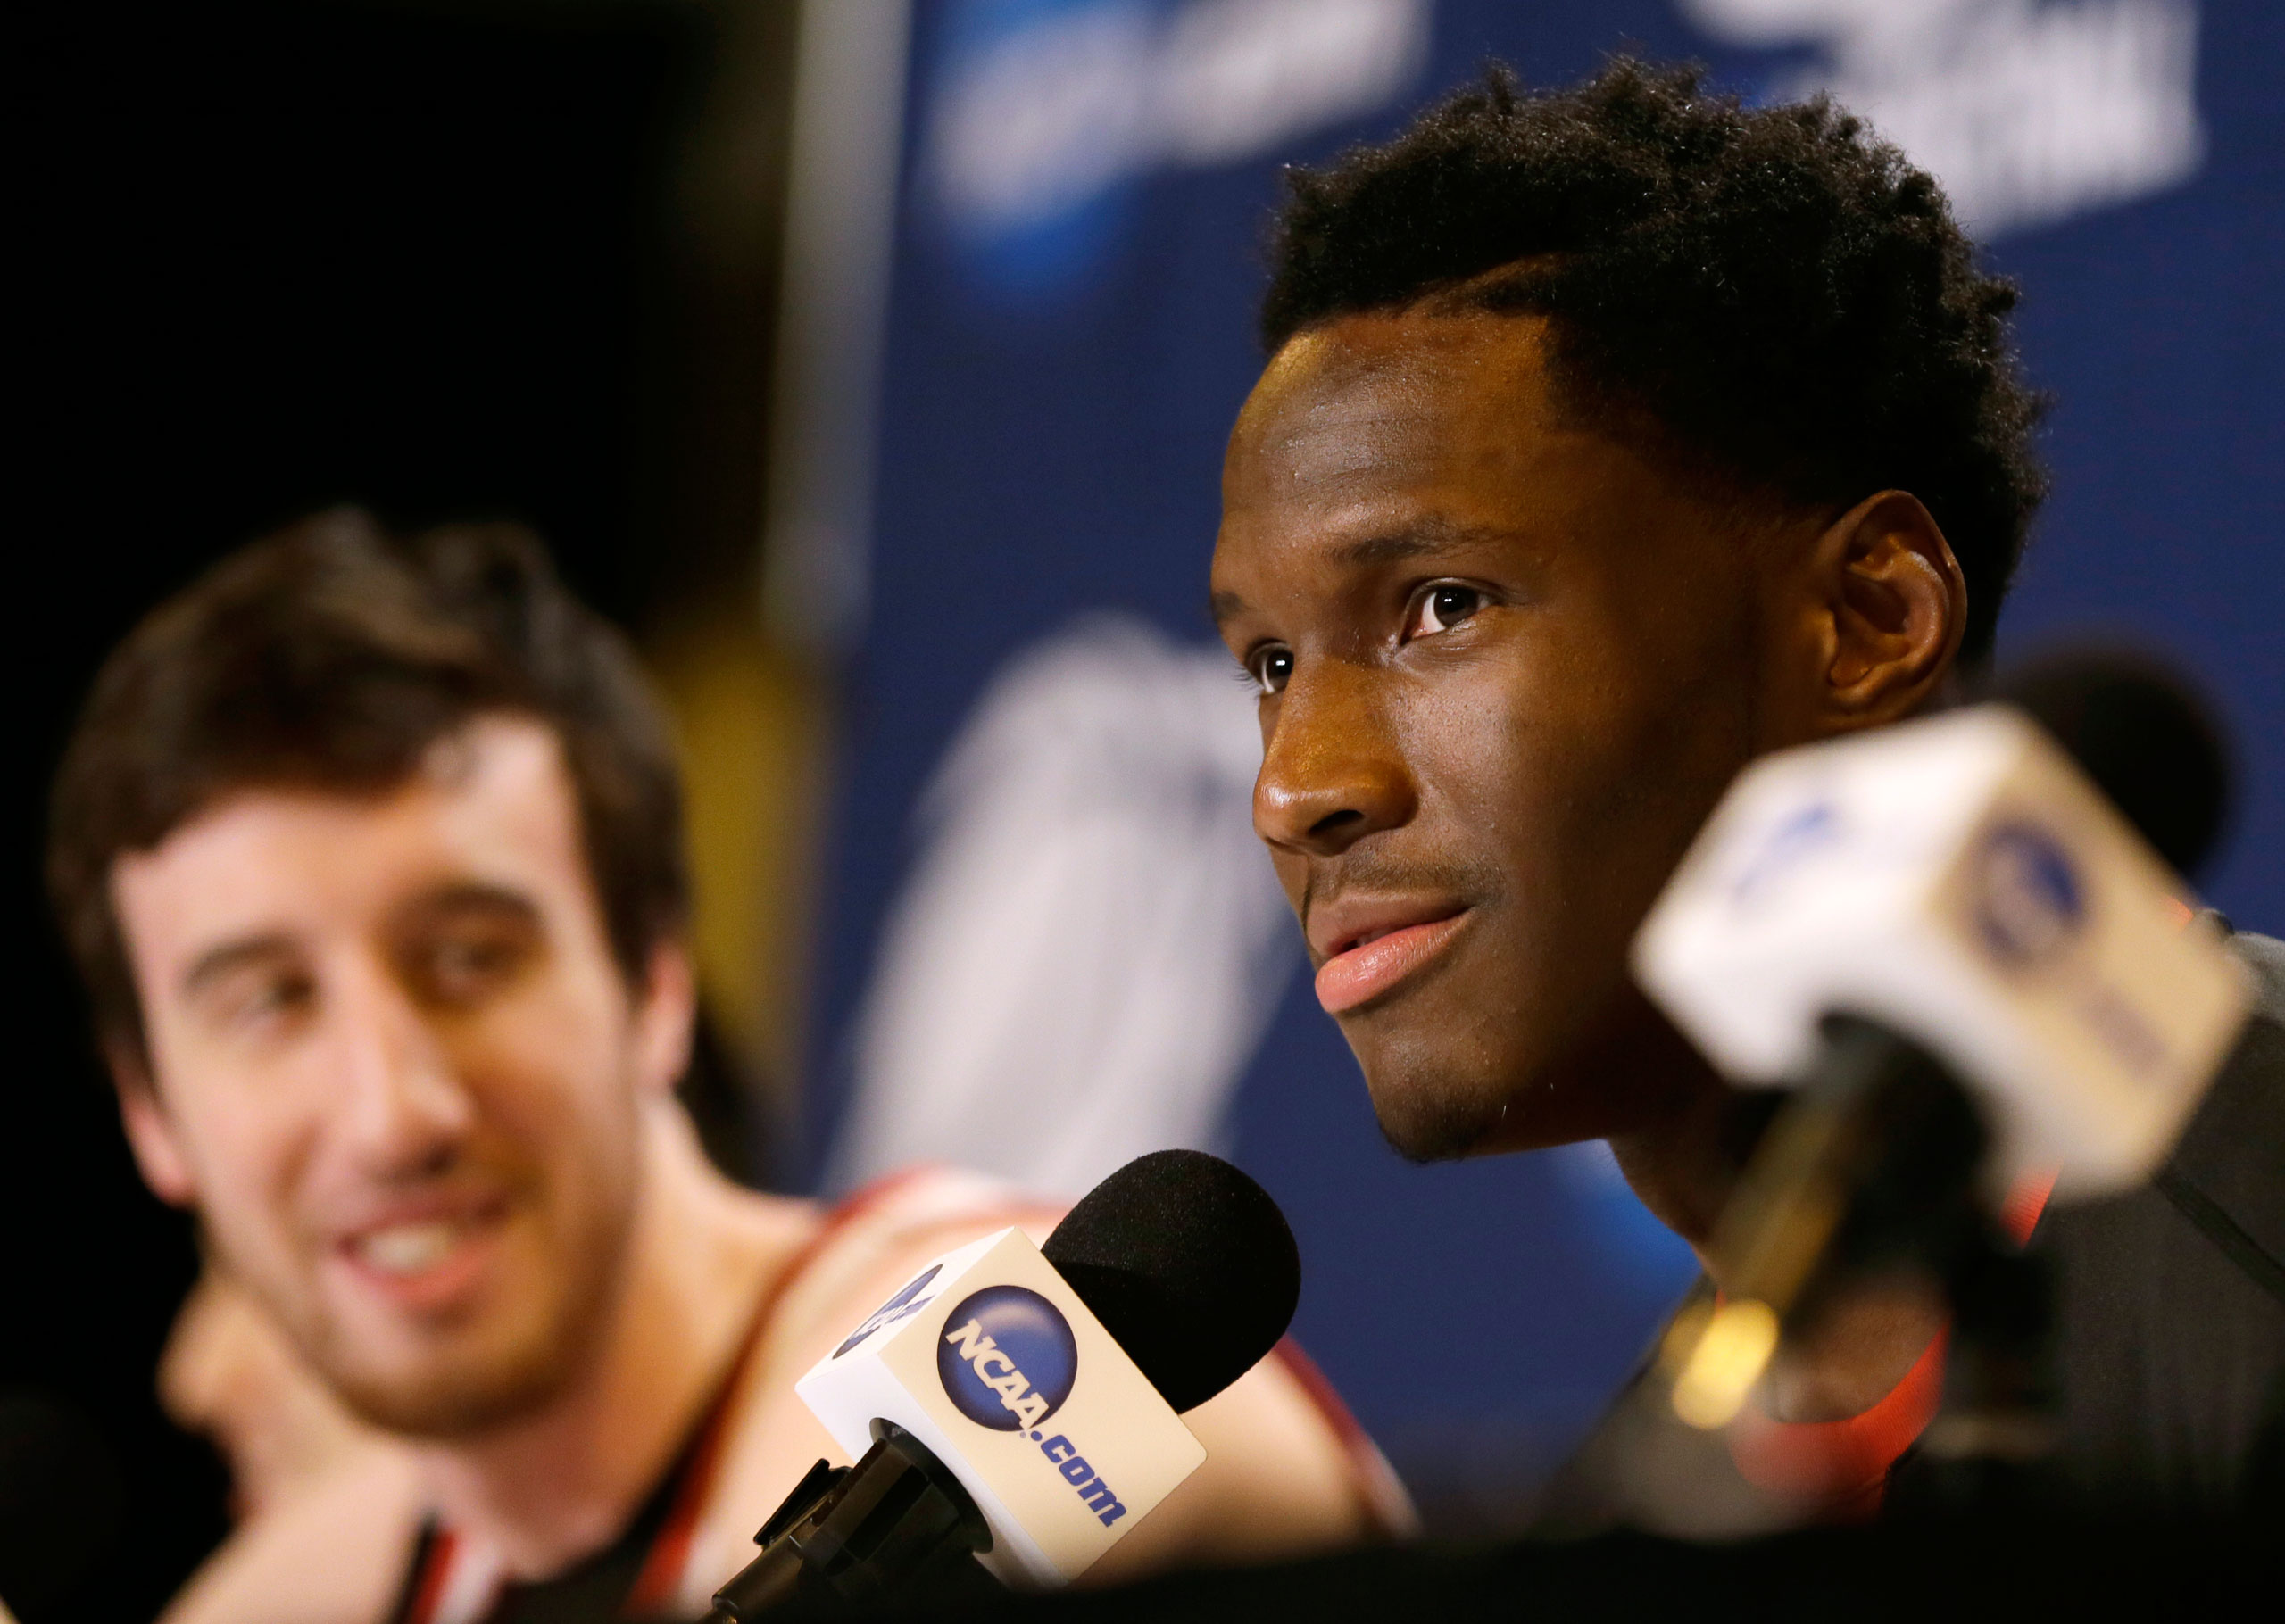 Wisconsin forward Nigel Hayes speaks during a news conference for an NCAA college basketball tournament third round game, March 21, 2015, in Omaha.